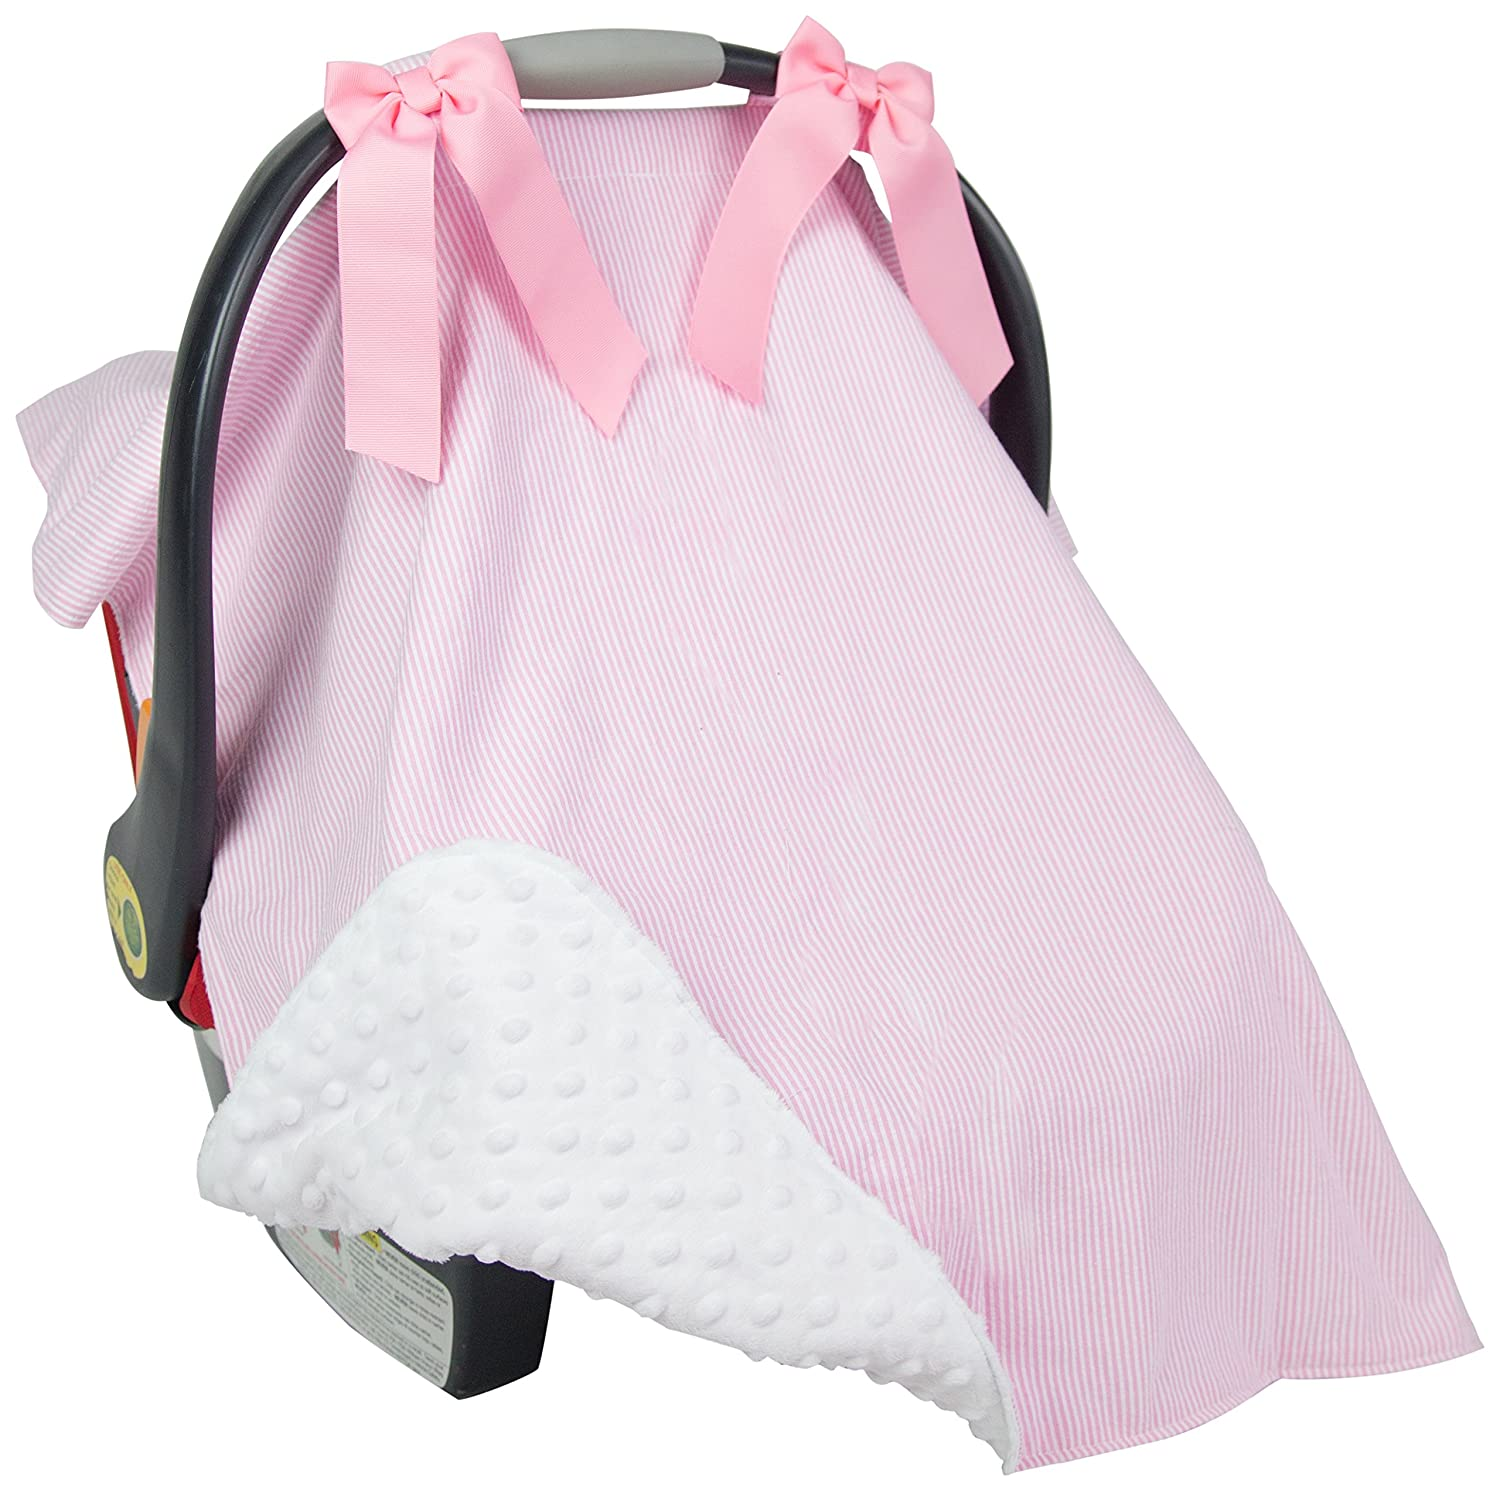 Muslin Baby Car Seat Canopy Cart Stroller Carseat Covers Canopy Cover Windproof Sunshade with Straps